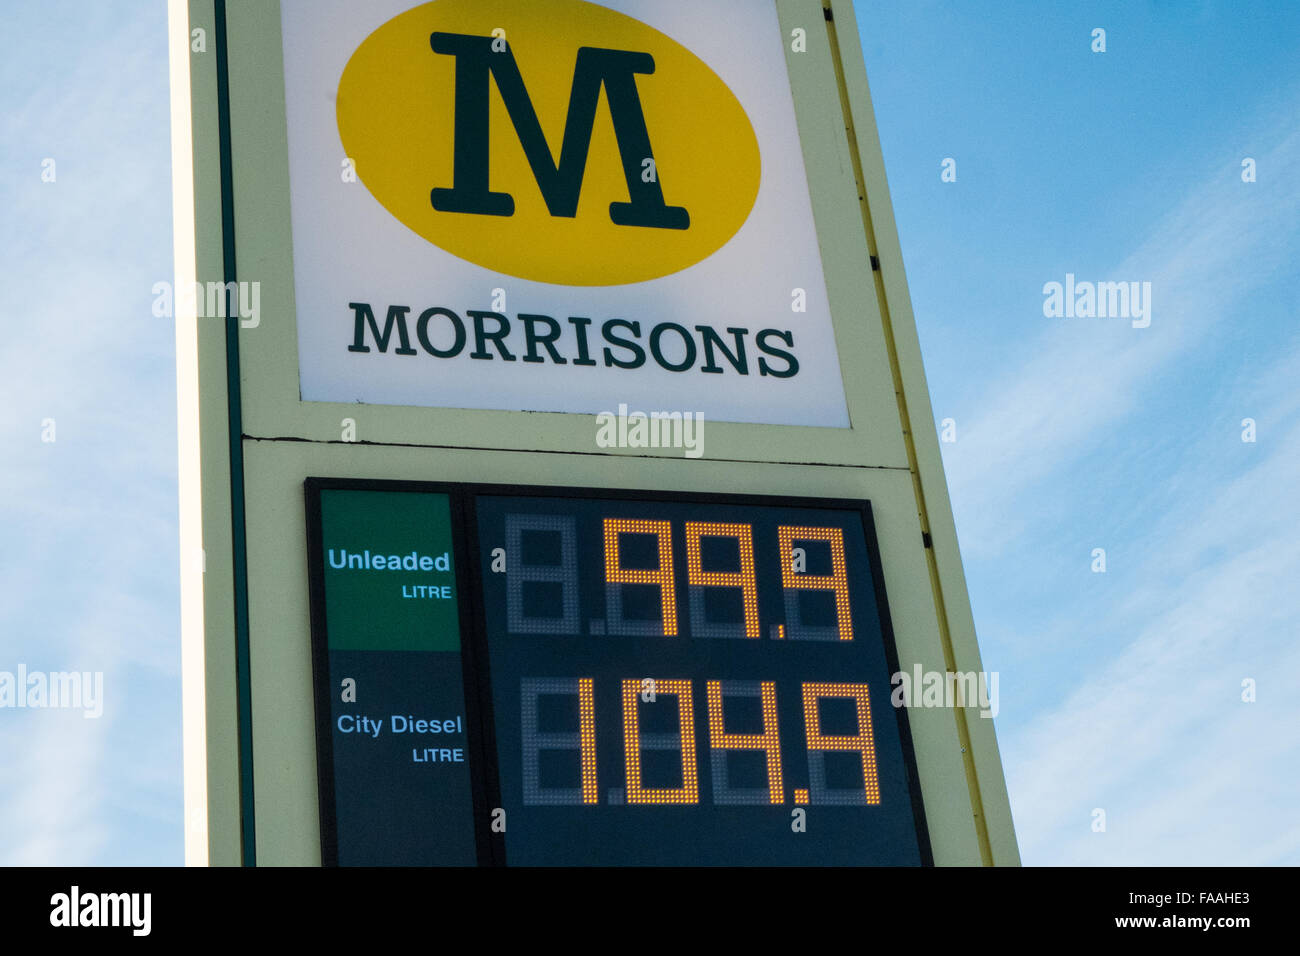 Carmarthen, Wales, UK. 11th December, 2015. Vehicles queue to fill up at Morrisons petrol station after price reduction - Stock Image